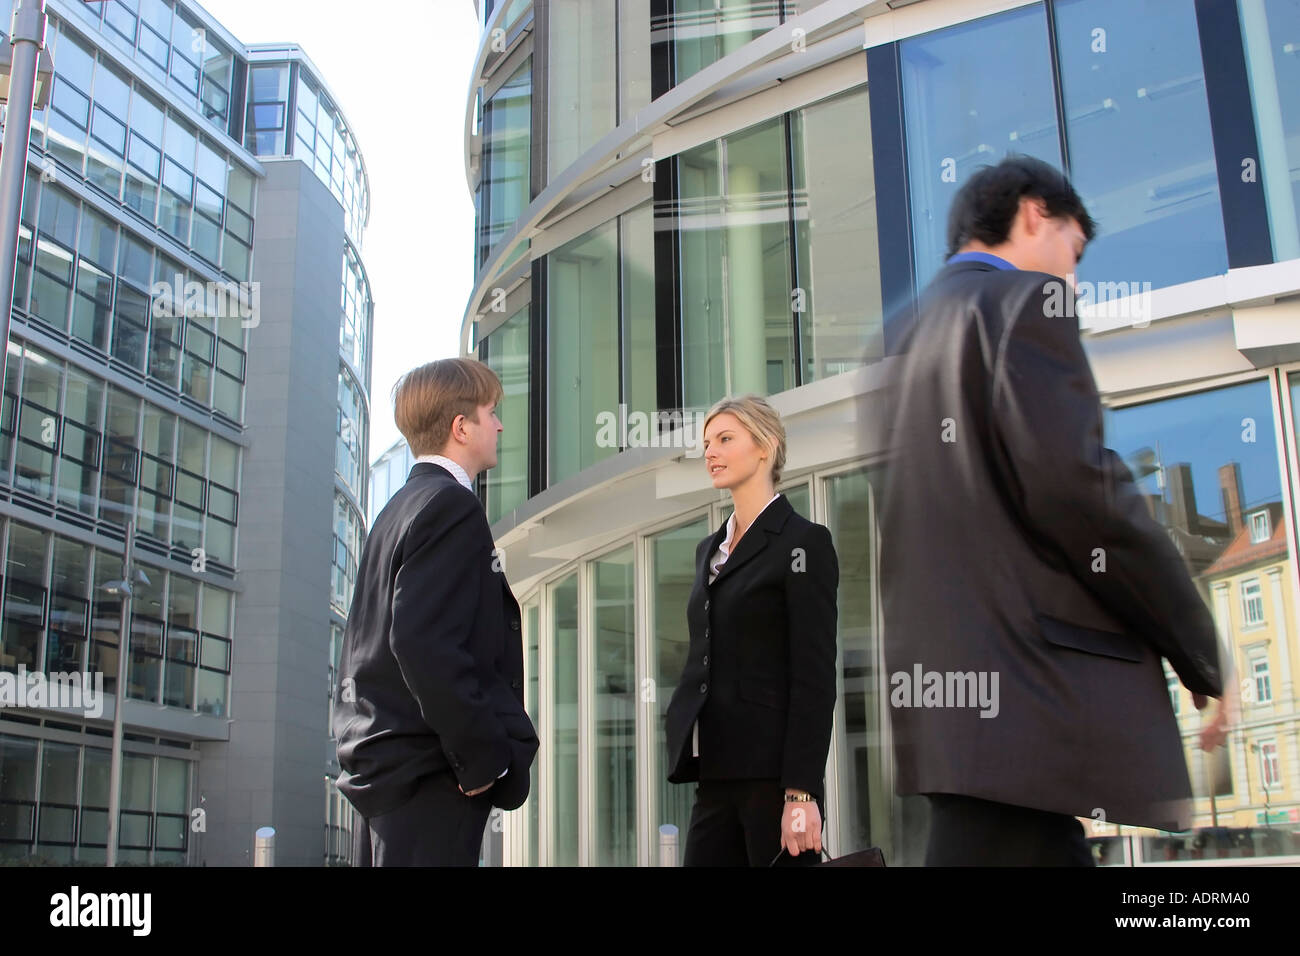 73a095b57ab3 Man and woman in business clothing converse while another businessman  passes by